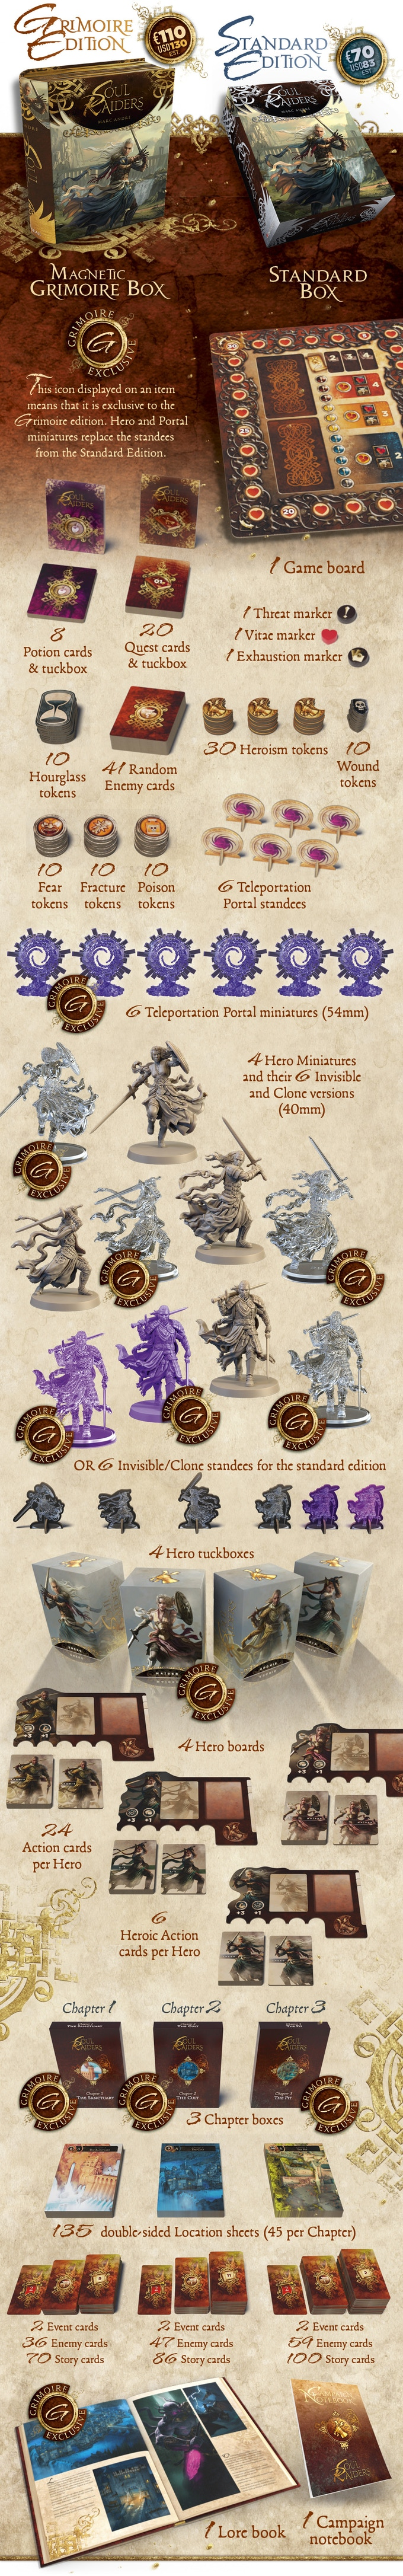 Soul Raiders Pledges - One For All